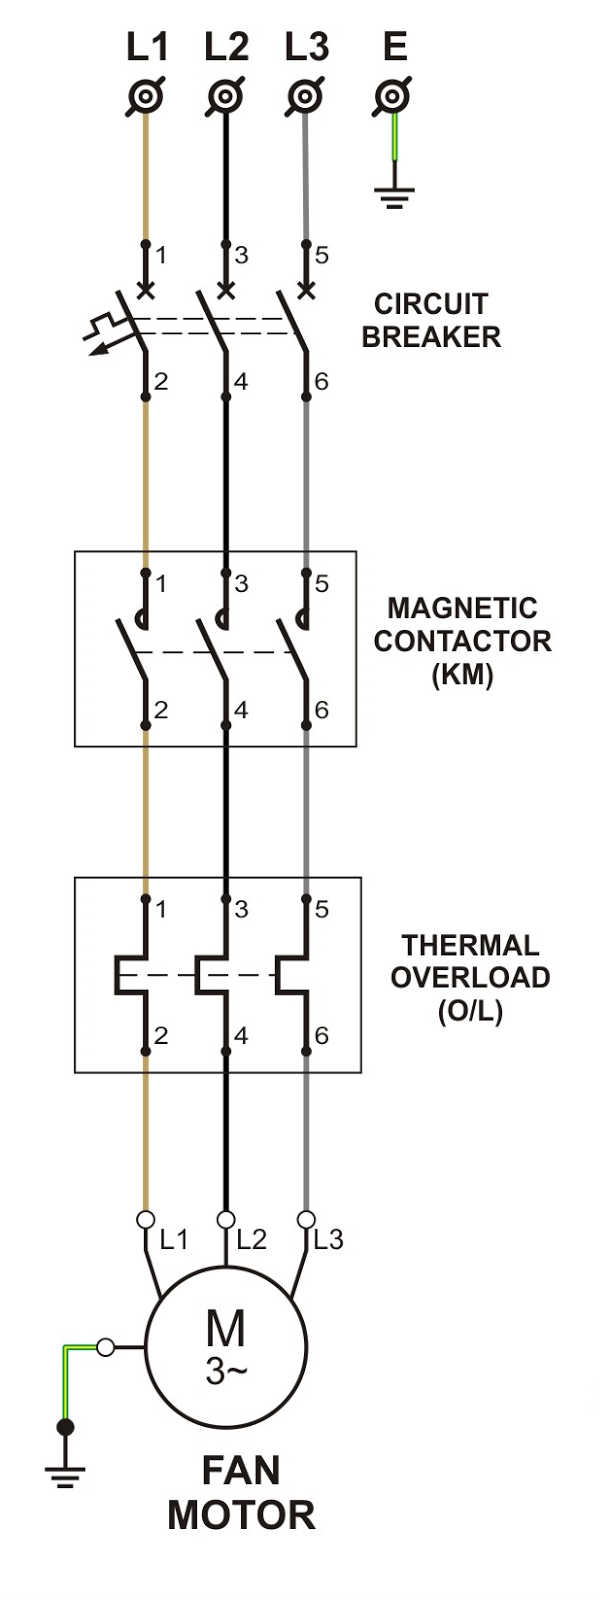 hight resolution of motor overload relay wiring diagrams gallery induction motor symbol